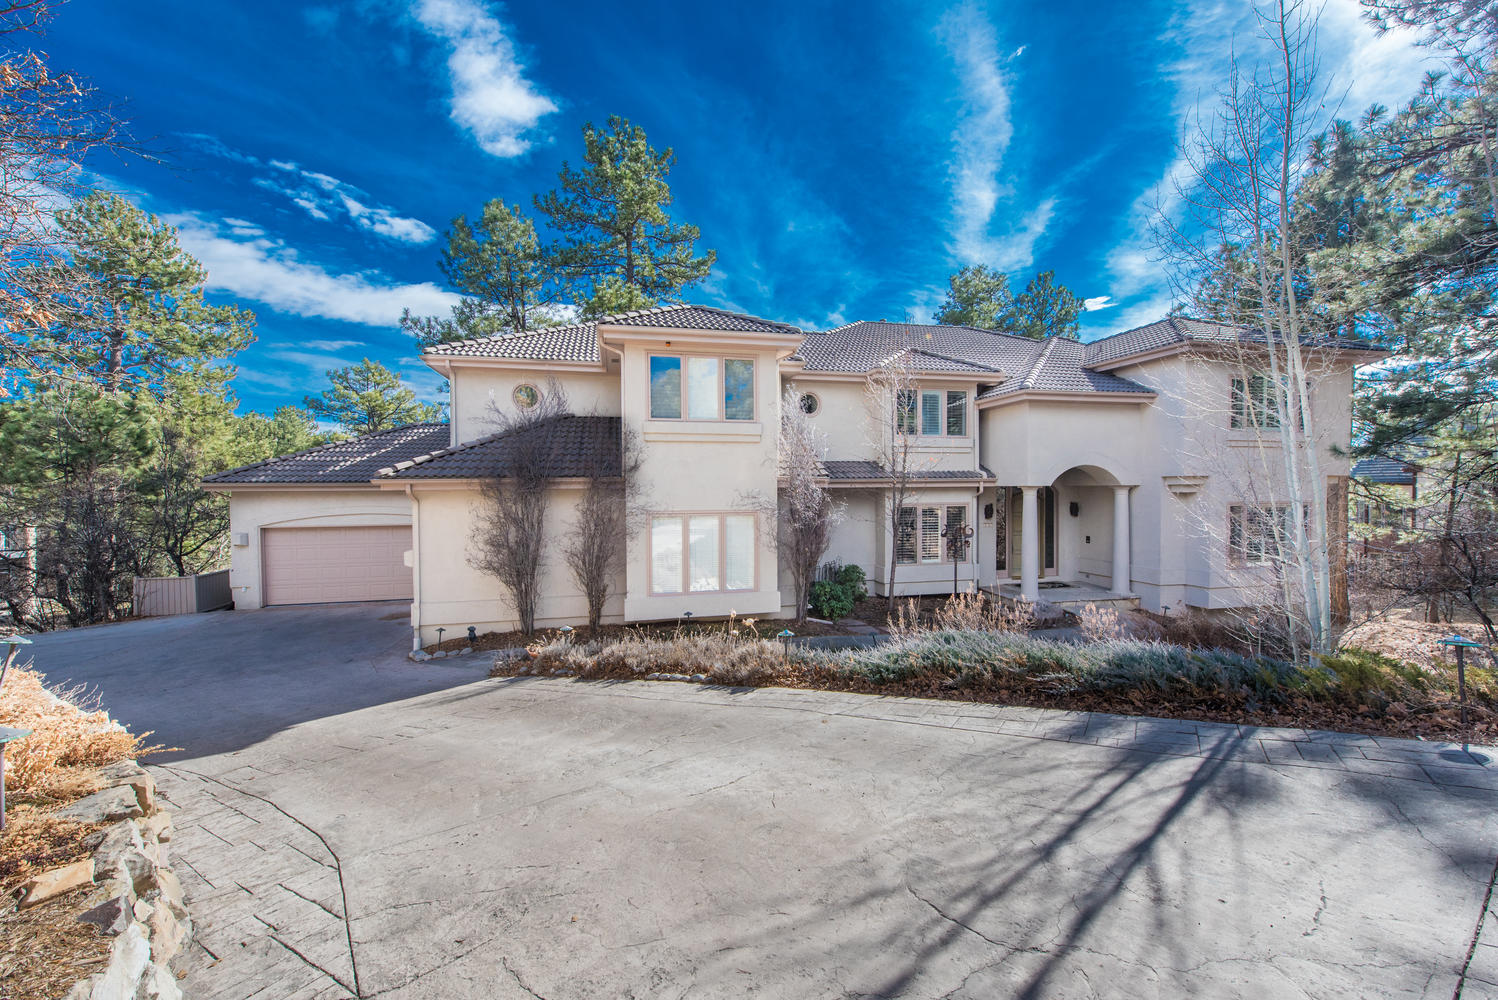 Single Family Home for Sale at 516 Prospect Dr Castle Pines Village, Castle Rock, Colorado, 80108 United States